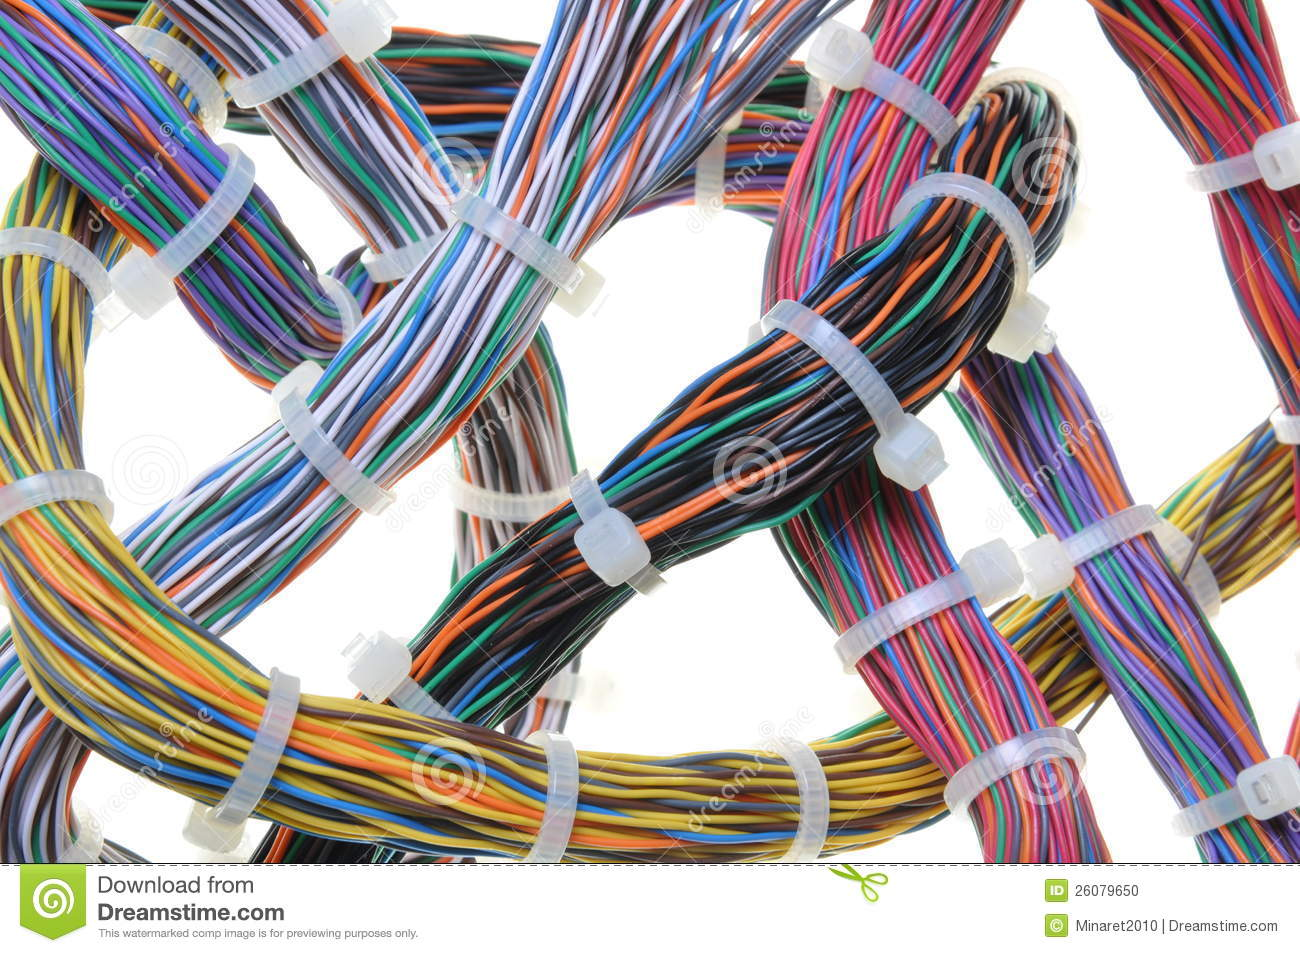 Electrical Wire Bundle : Bundles of network cables stock photo image